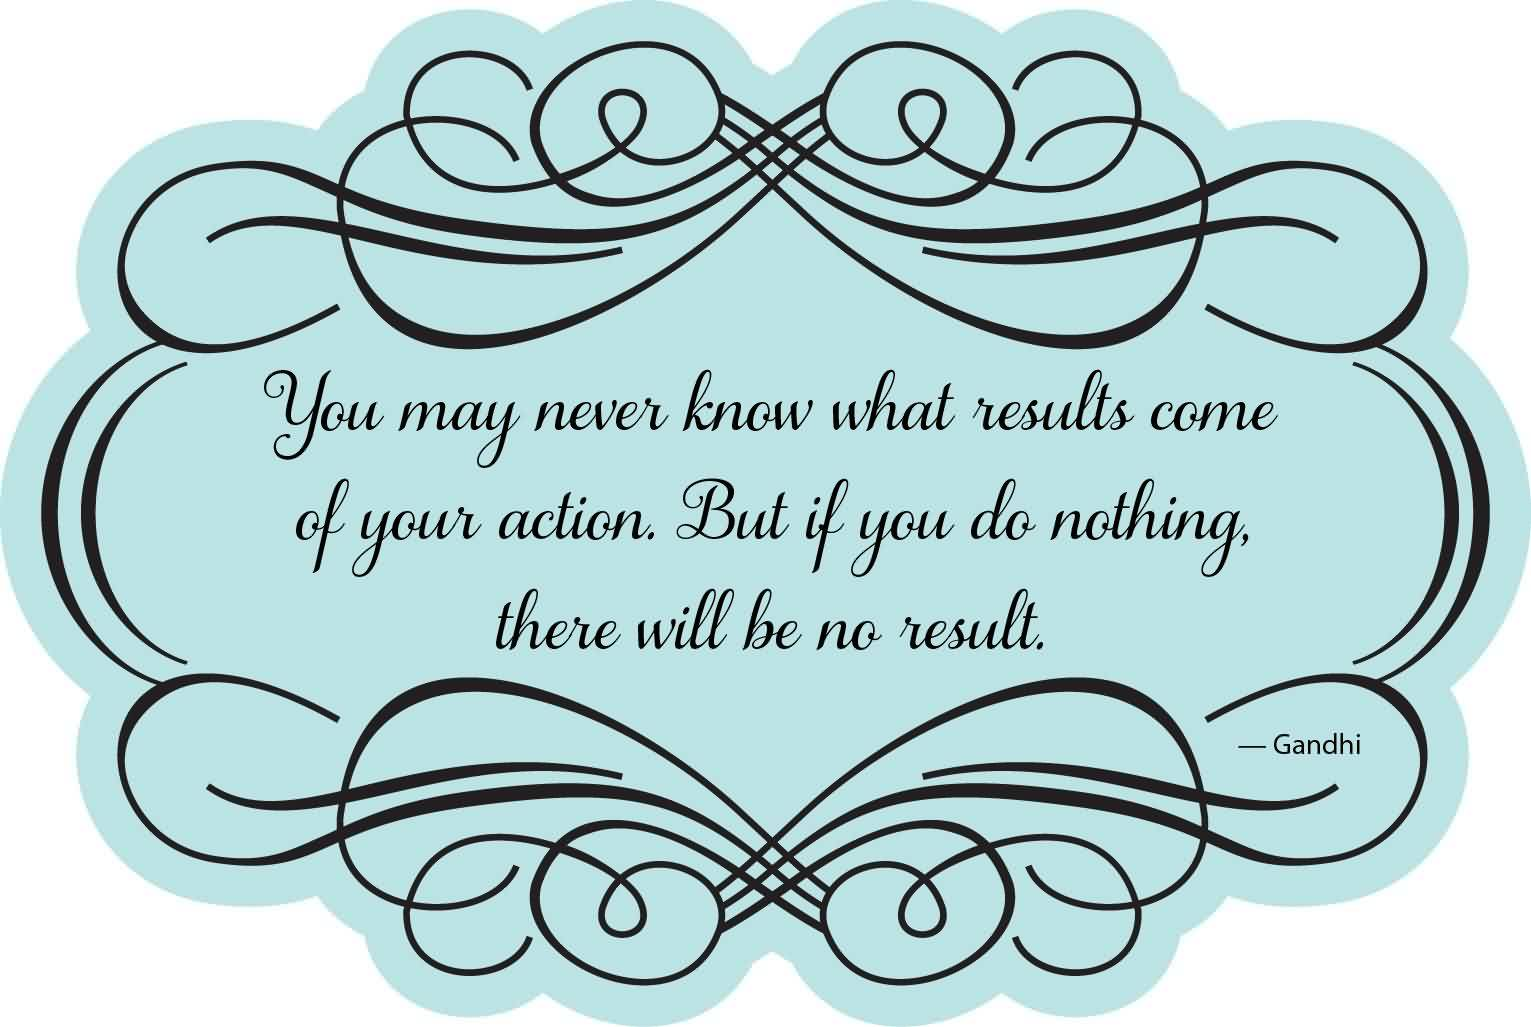 Famous Graduation Quotes By Gandhi ~ You May Never Know What Result Of Your Action. But If You Do Nothing There Will Be No Result.